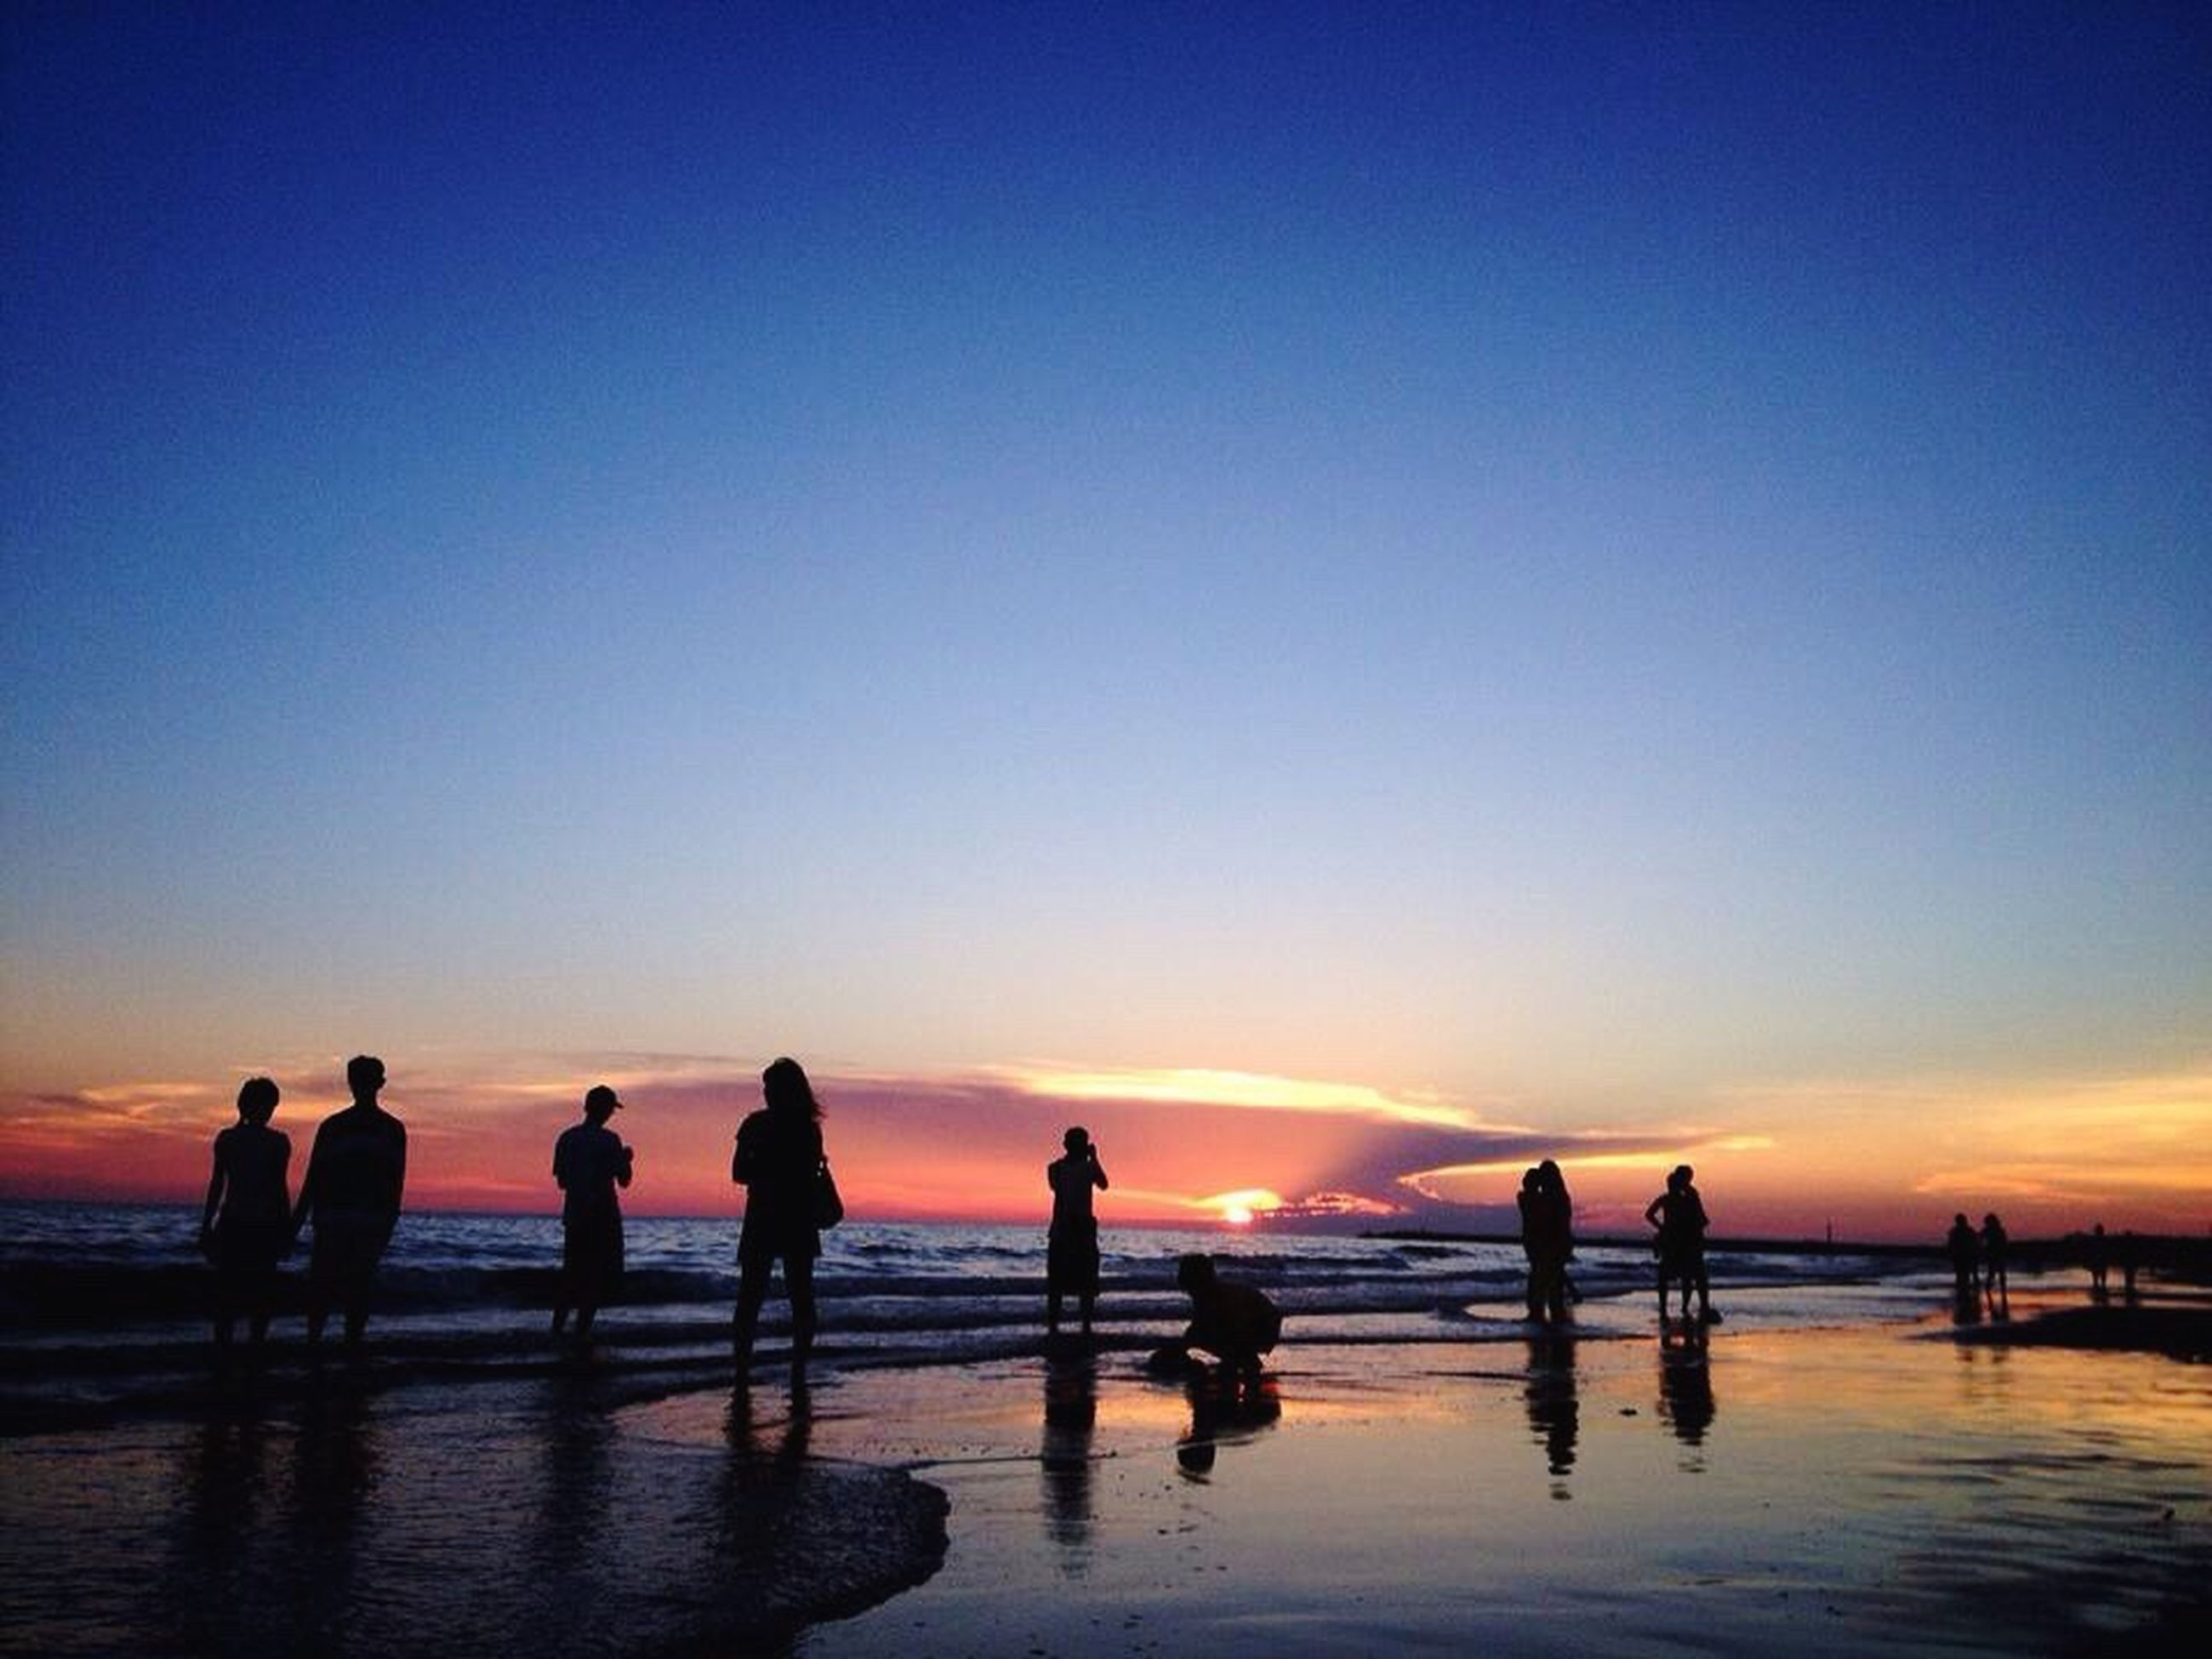 sea, sunset, water, silhouette, horizon over water, beach, copy space, orange color, scenics, tranquility, tranquil scene, beauty in nature, clear sky, men, vacations, leisure activity, sky, waterfront, reflection